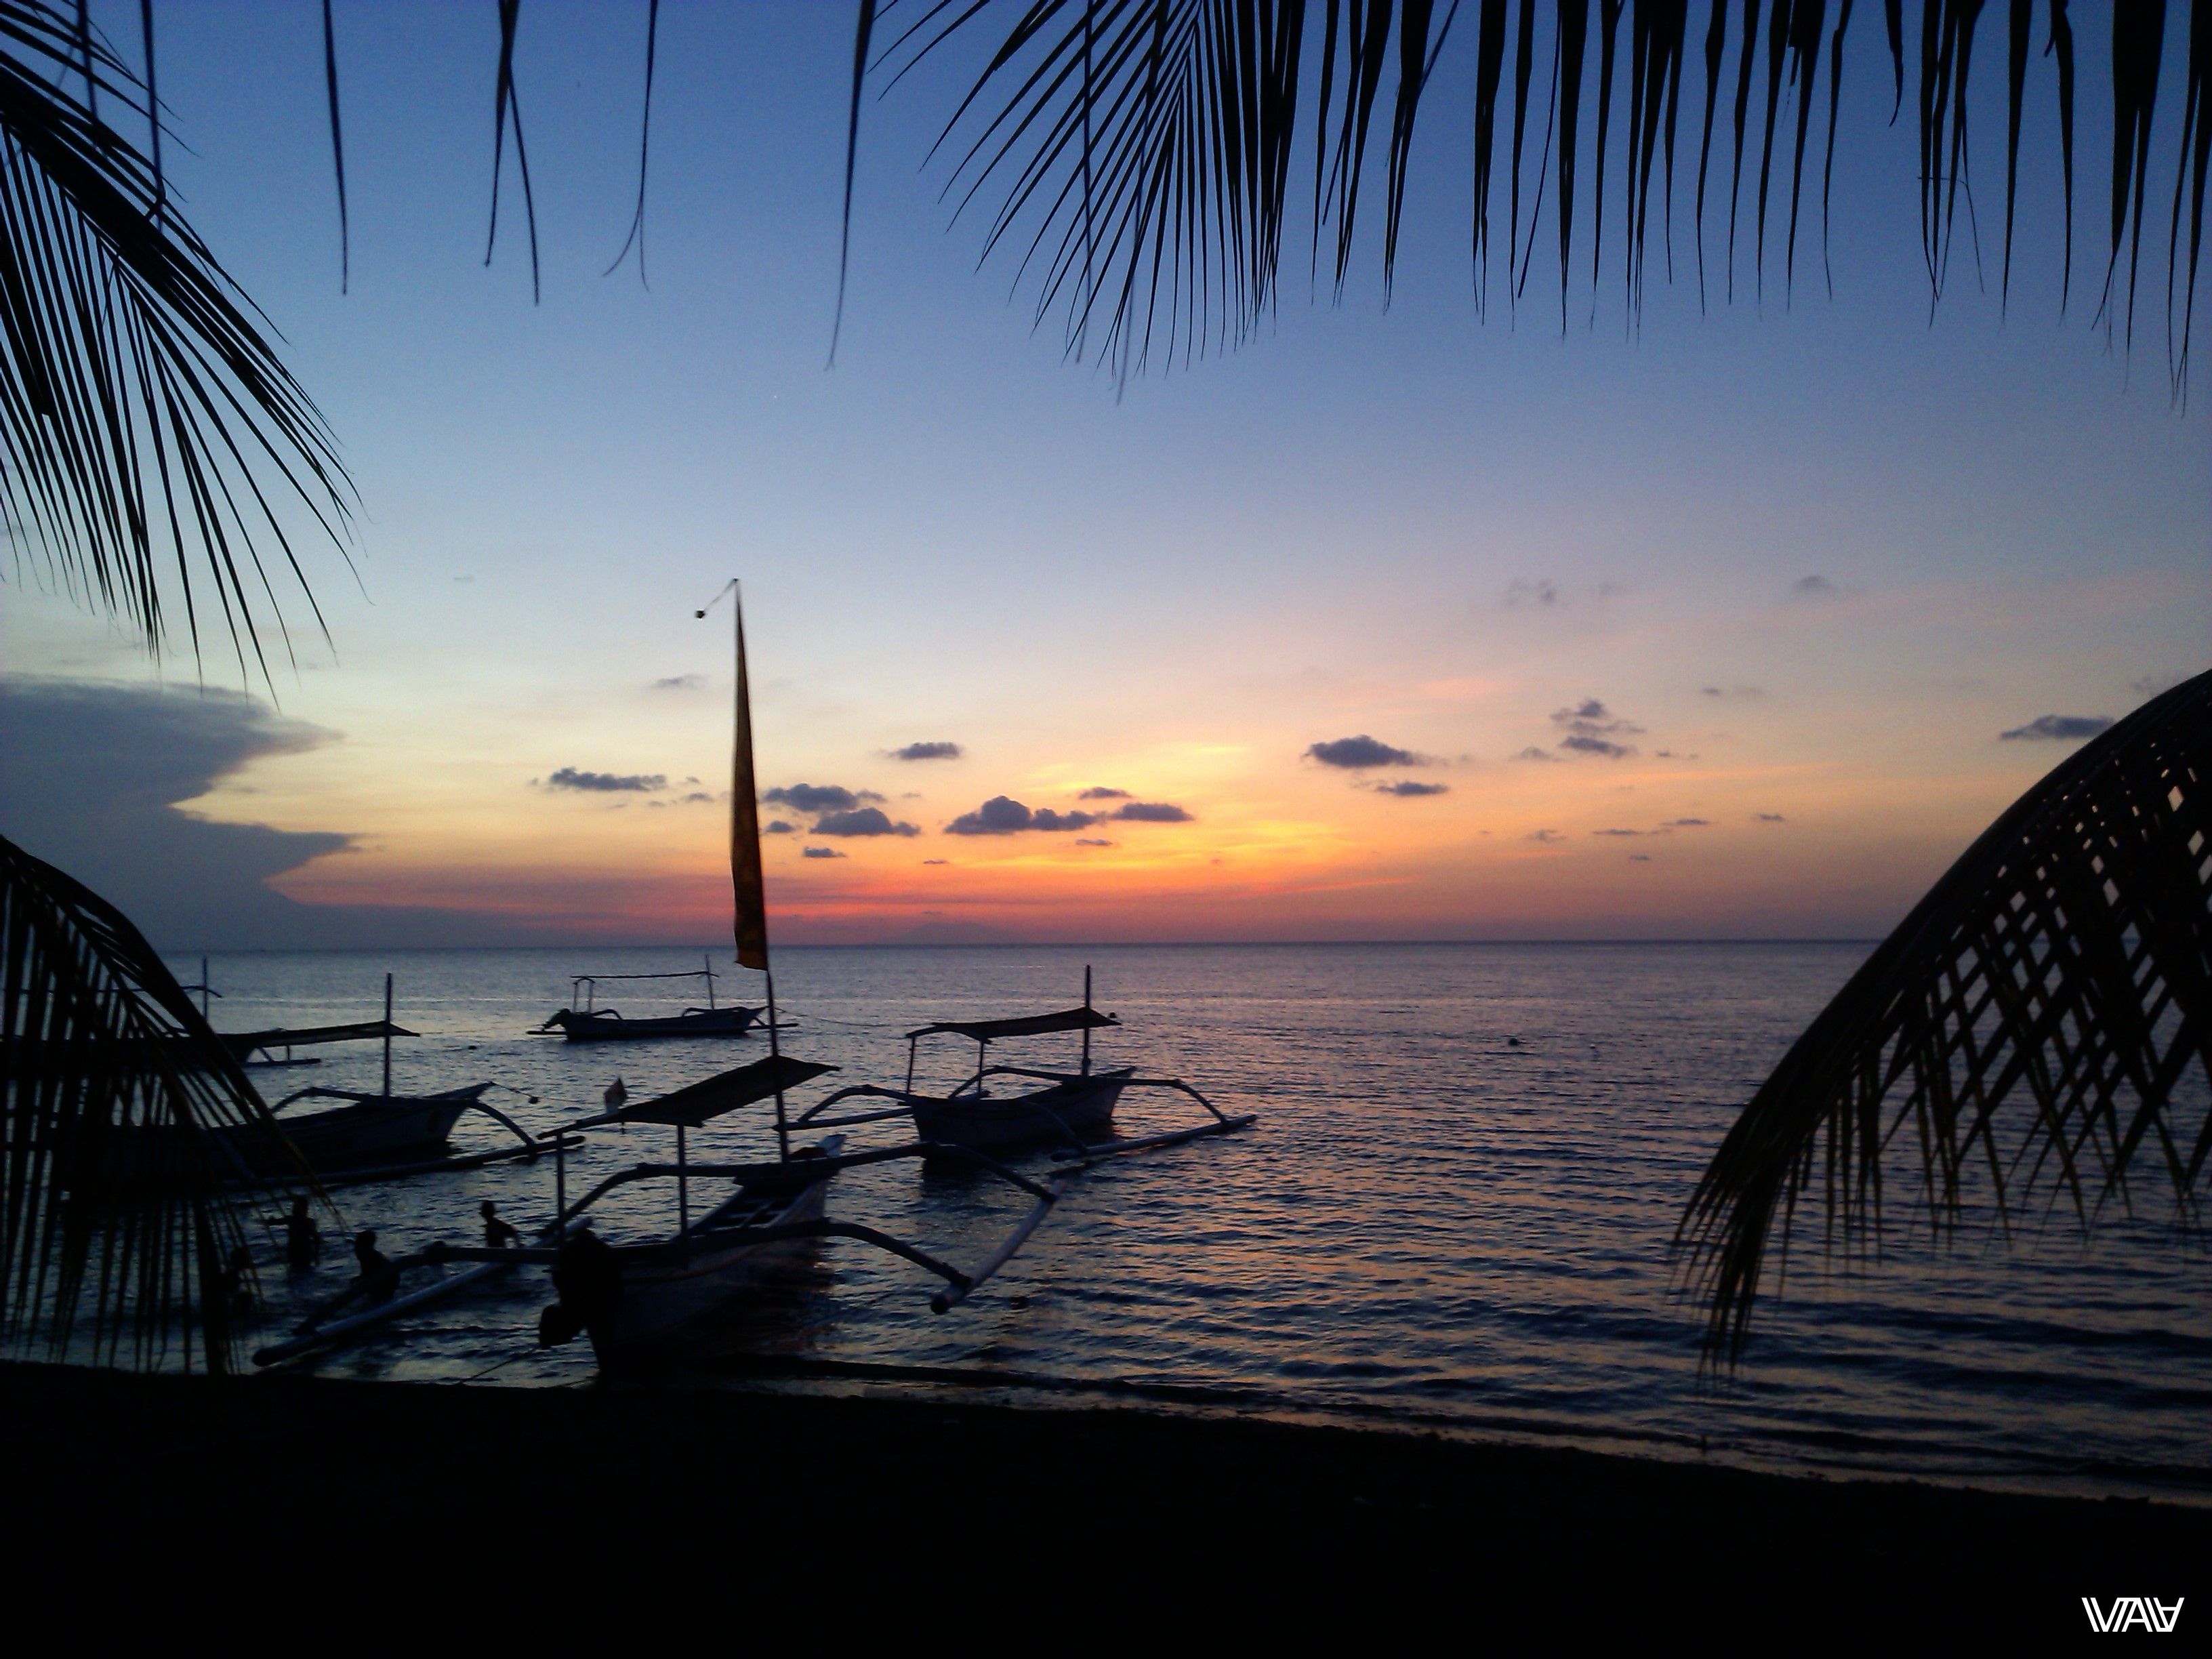 Sunsets in Bali are incredibly beautiful, and the water in the sea is warm as fresh milk. Lovina, Bali Island, Indonesia